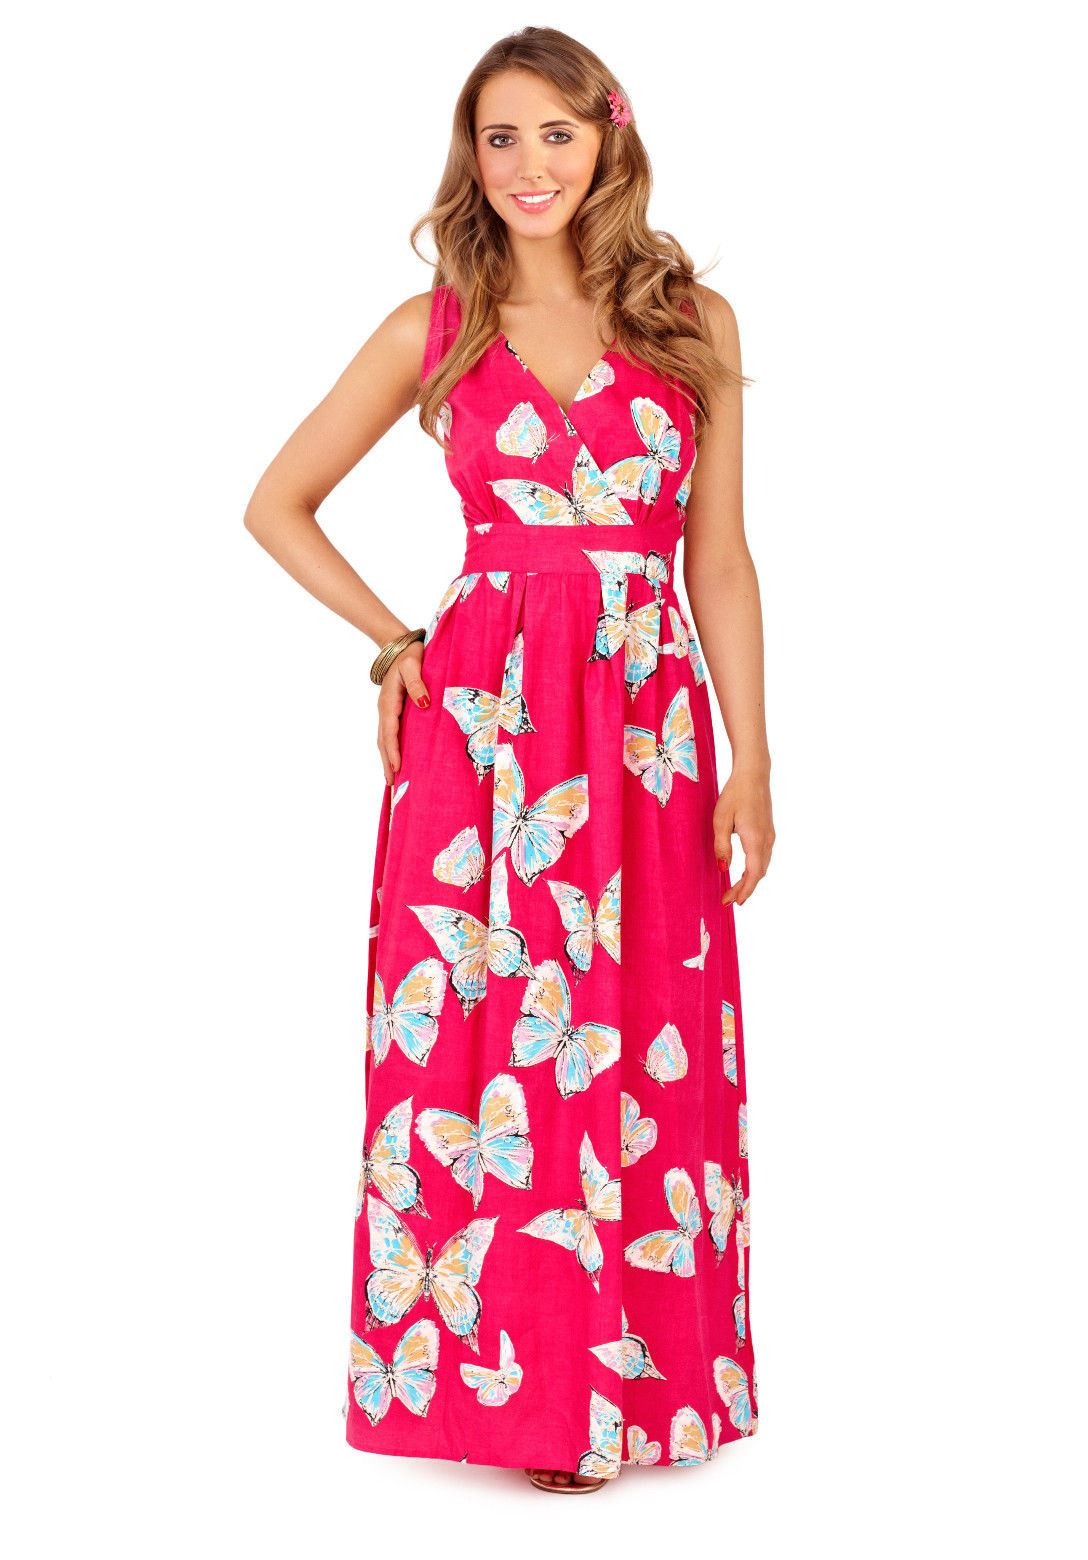 Maxi Dresses for Women add a timeless look to your everyday style. With a look and price you'll love, maxi dresses from Kohl's will become favorite options for work and weekend wearl! Kohl's has dresses from all of the most popular brands in the business, including Candie's maxi dresses. And when it comes to your favorite colors, we have all the options you're looking for.